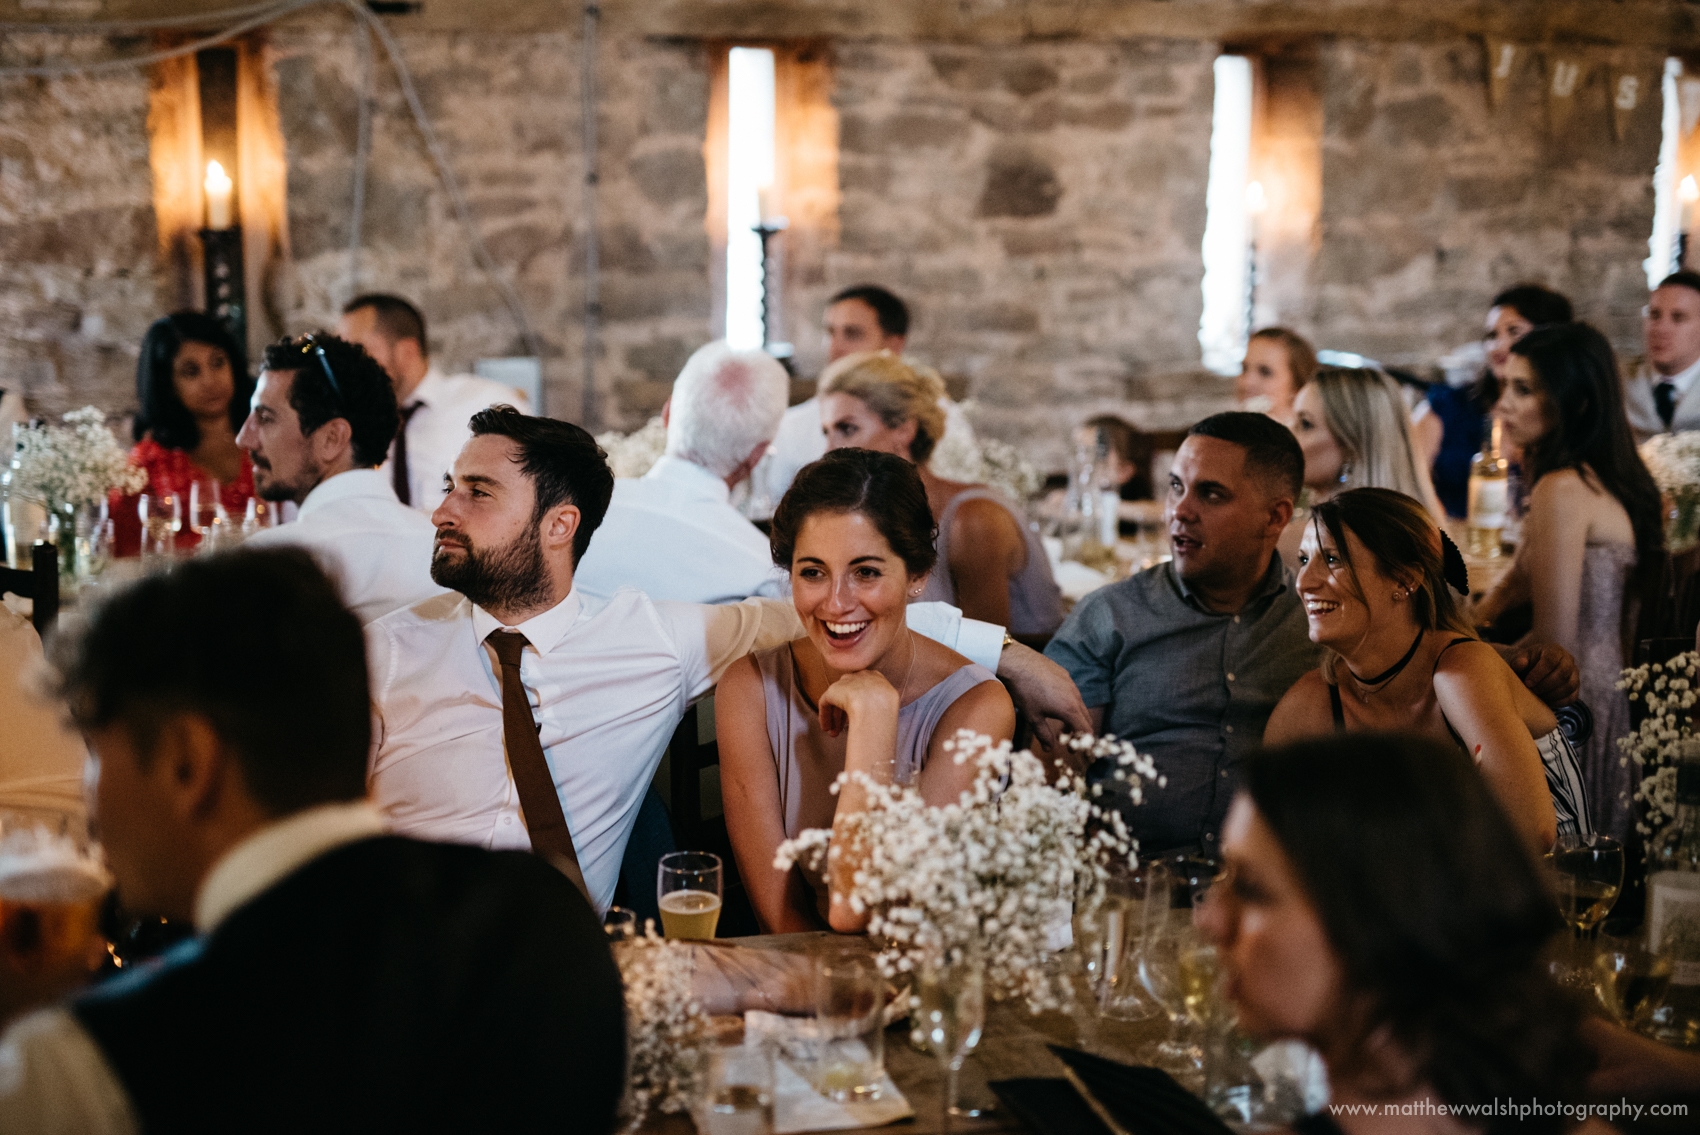 Guests find the best man speeches hilarious